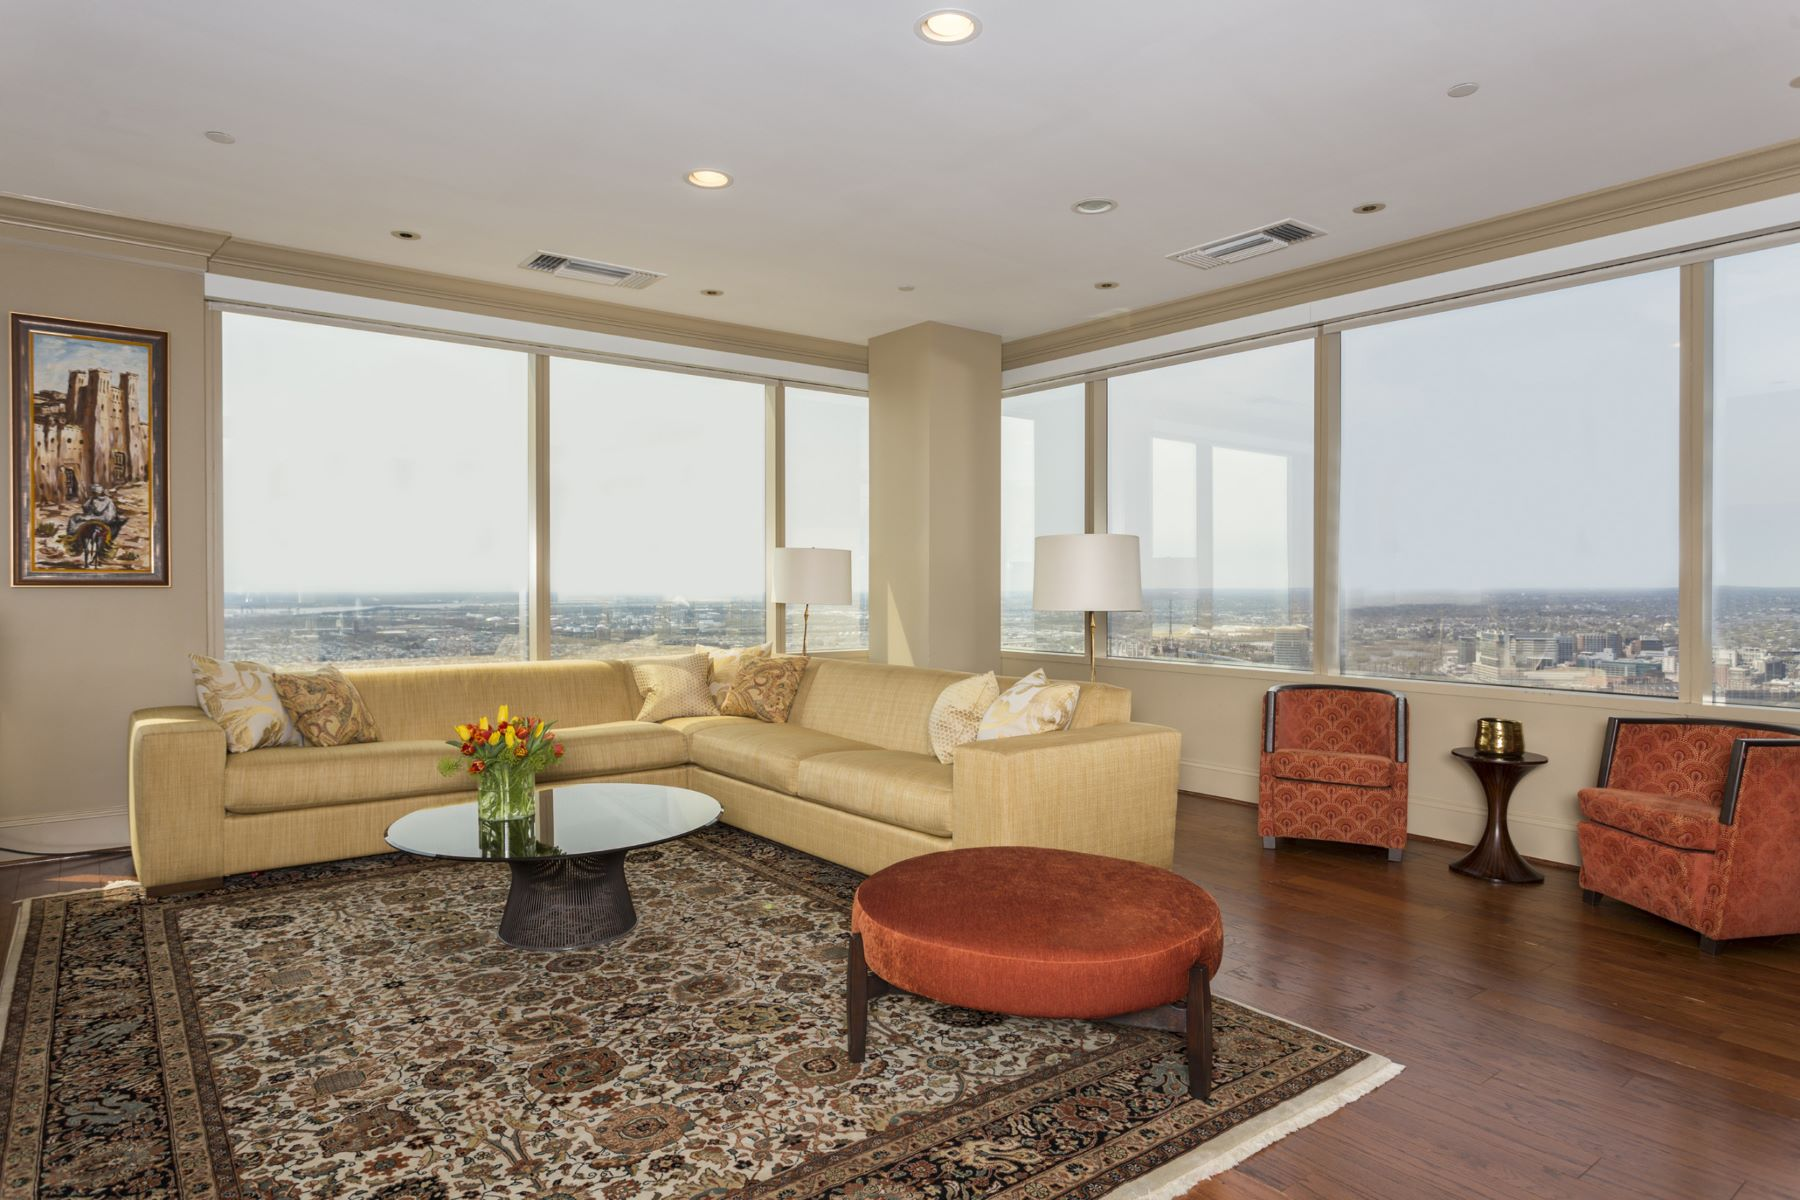 Condominium for Rent at Two Liberty Place 50 S 16TH ST #4501 4501 Philadelphia, 19102 United States